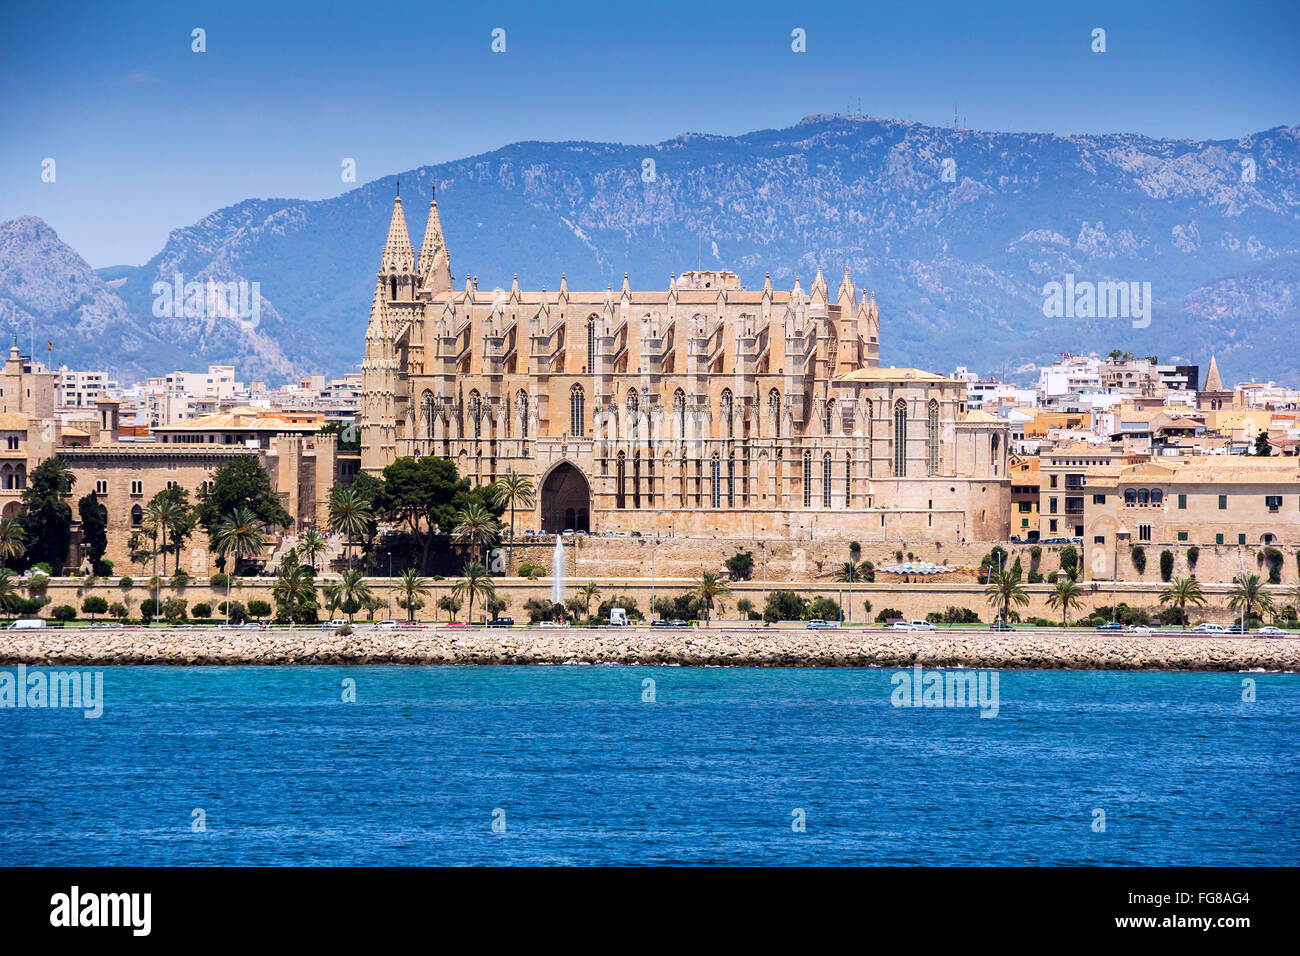 Cathedral Santa Maria of Palma de Mallorca, at Balearic Islands Spain - Stock Image